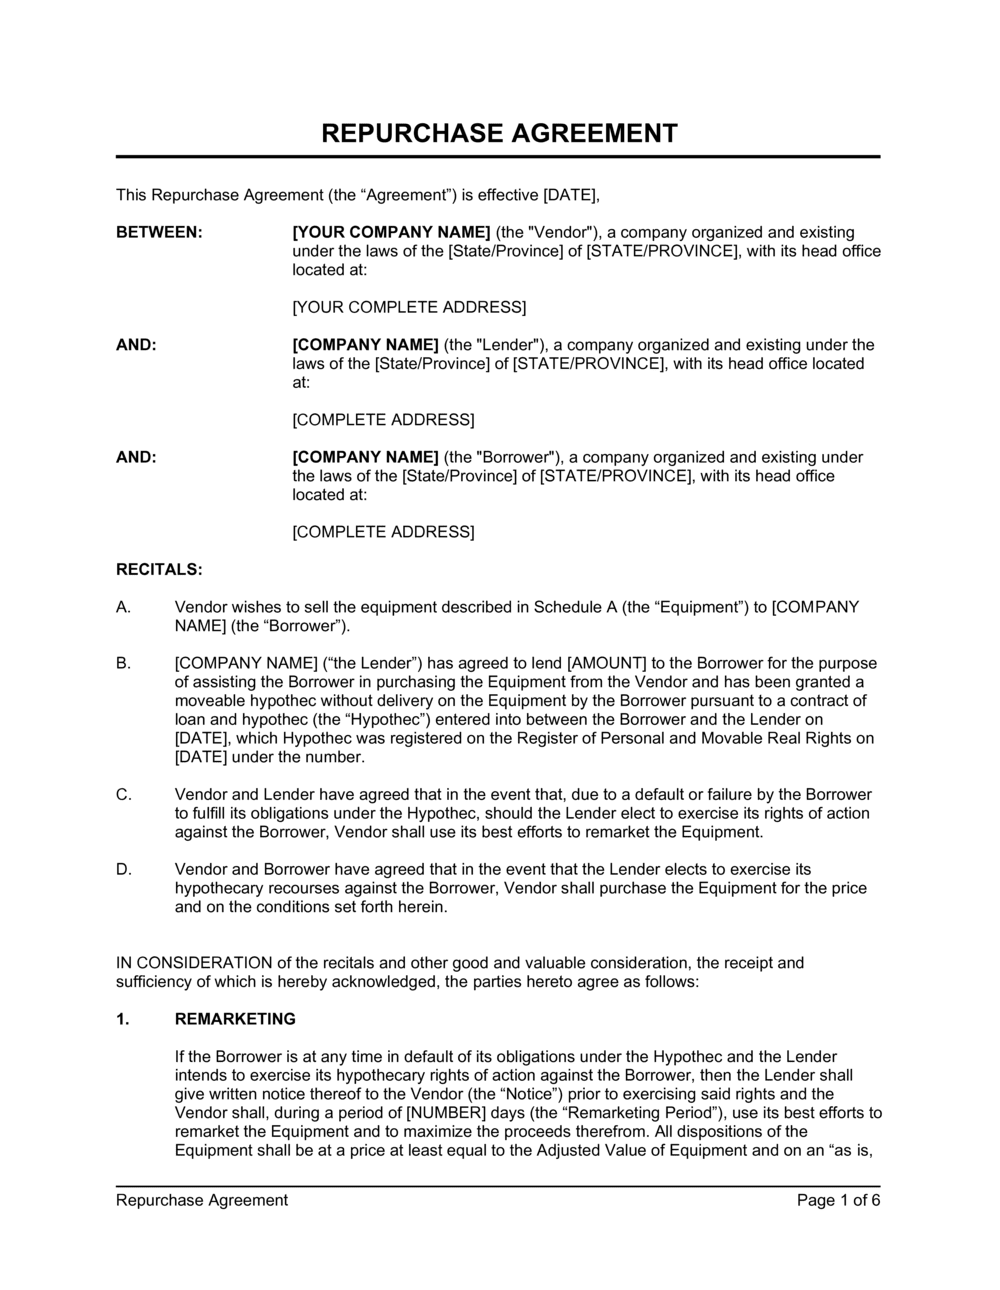 Business-in-a-Box's Repurchase Agreement Equipment Template